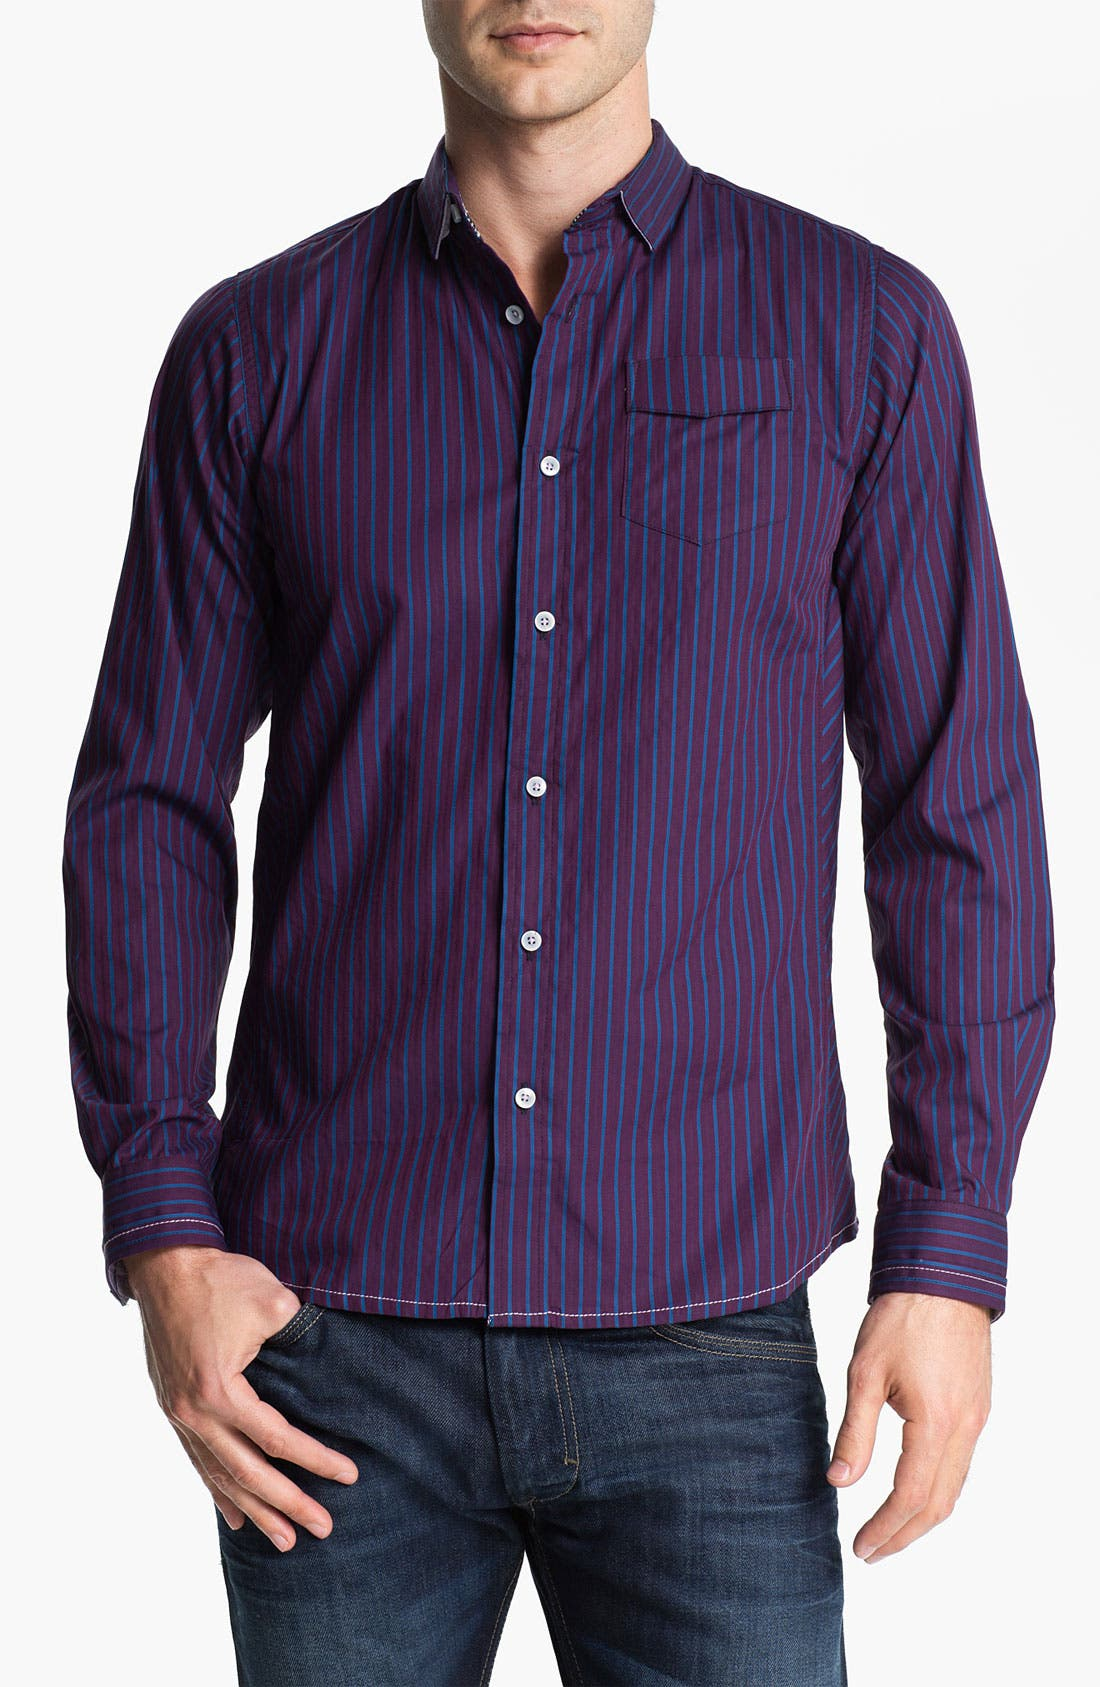 Alternate Image 1 Selected - Descendant of Thieves Stripe Woven Shirt